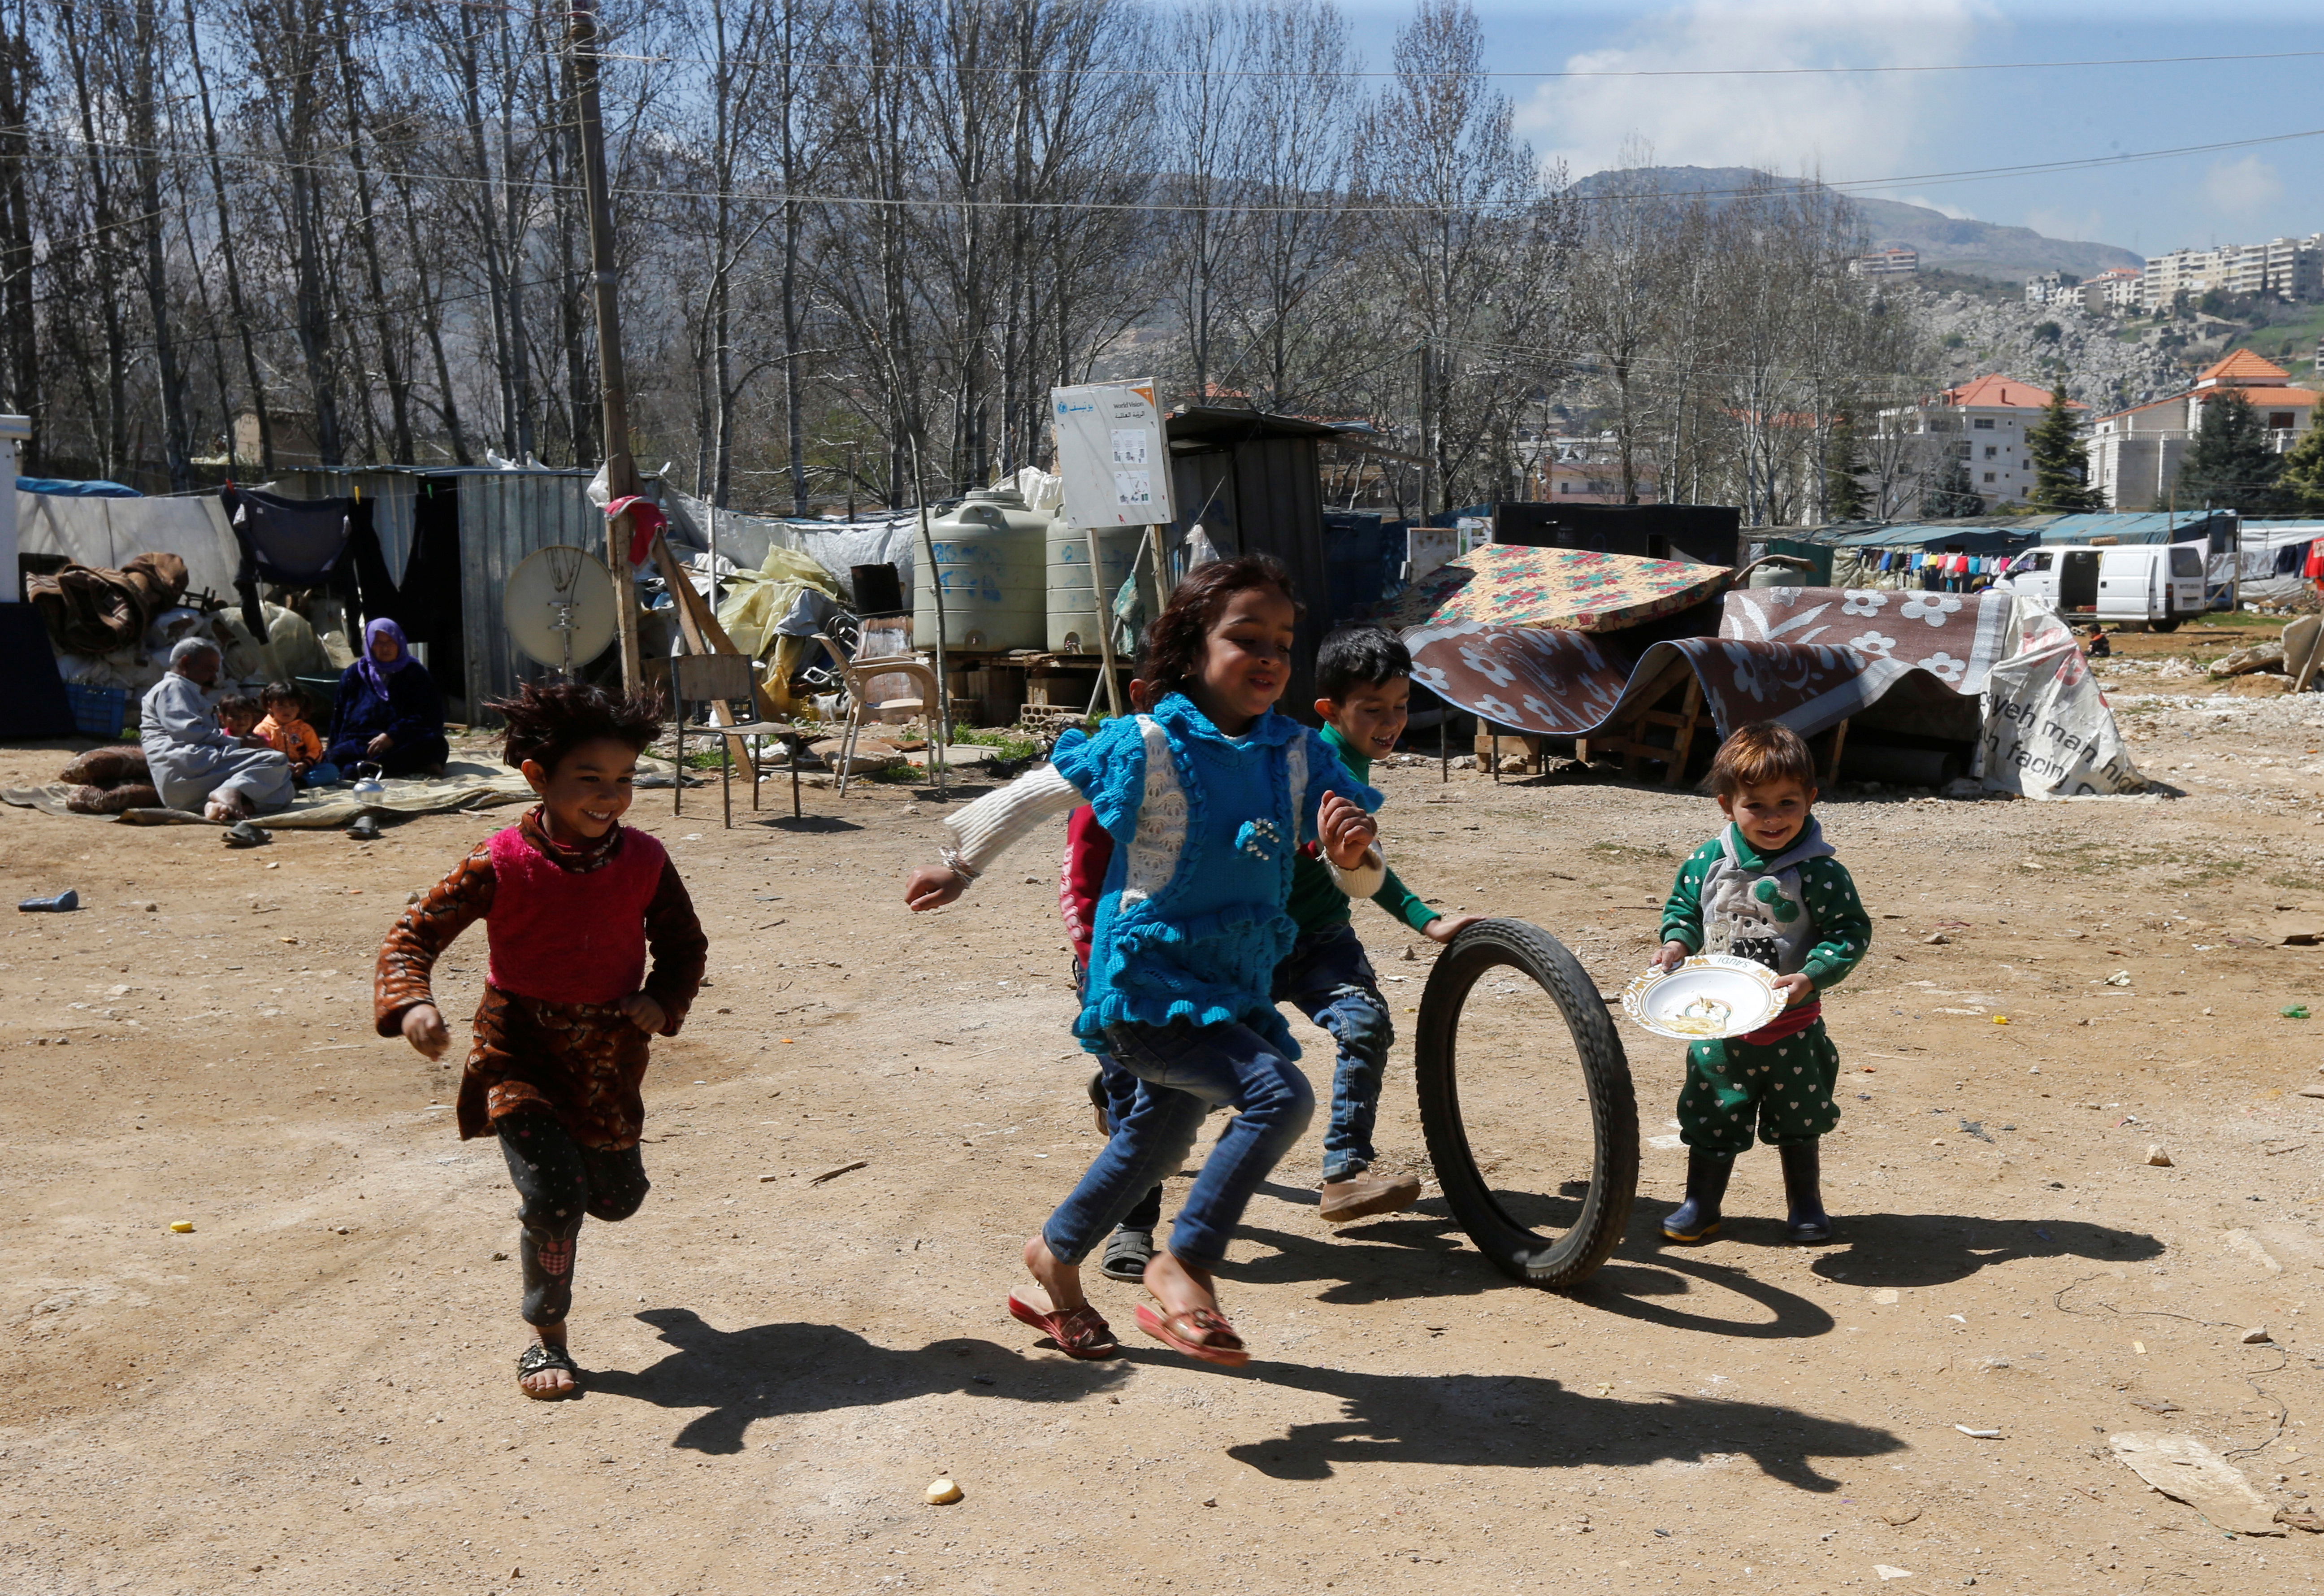 Syrian refugee children run in a tented settlement, in the town of Qab Elias, in Lebanon's Bekaa Valley, March 13, 2018.